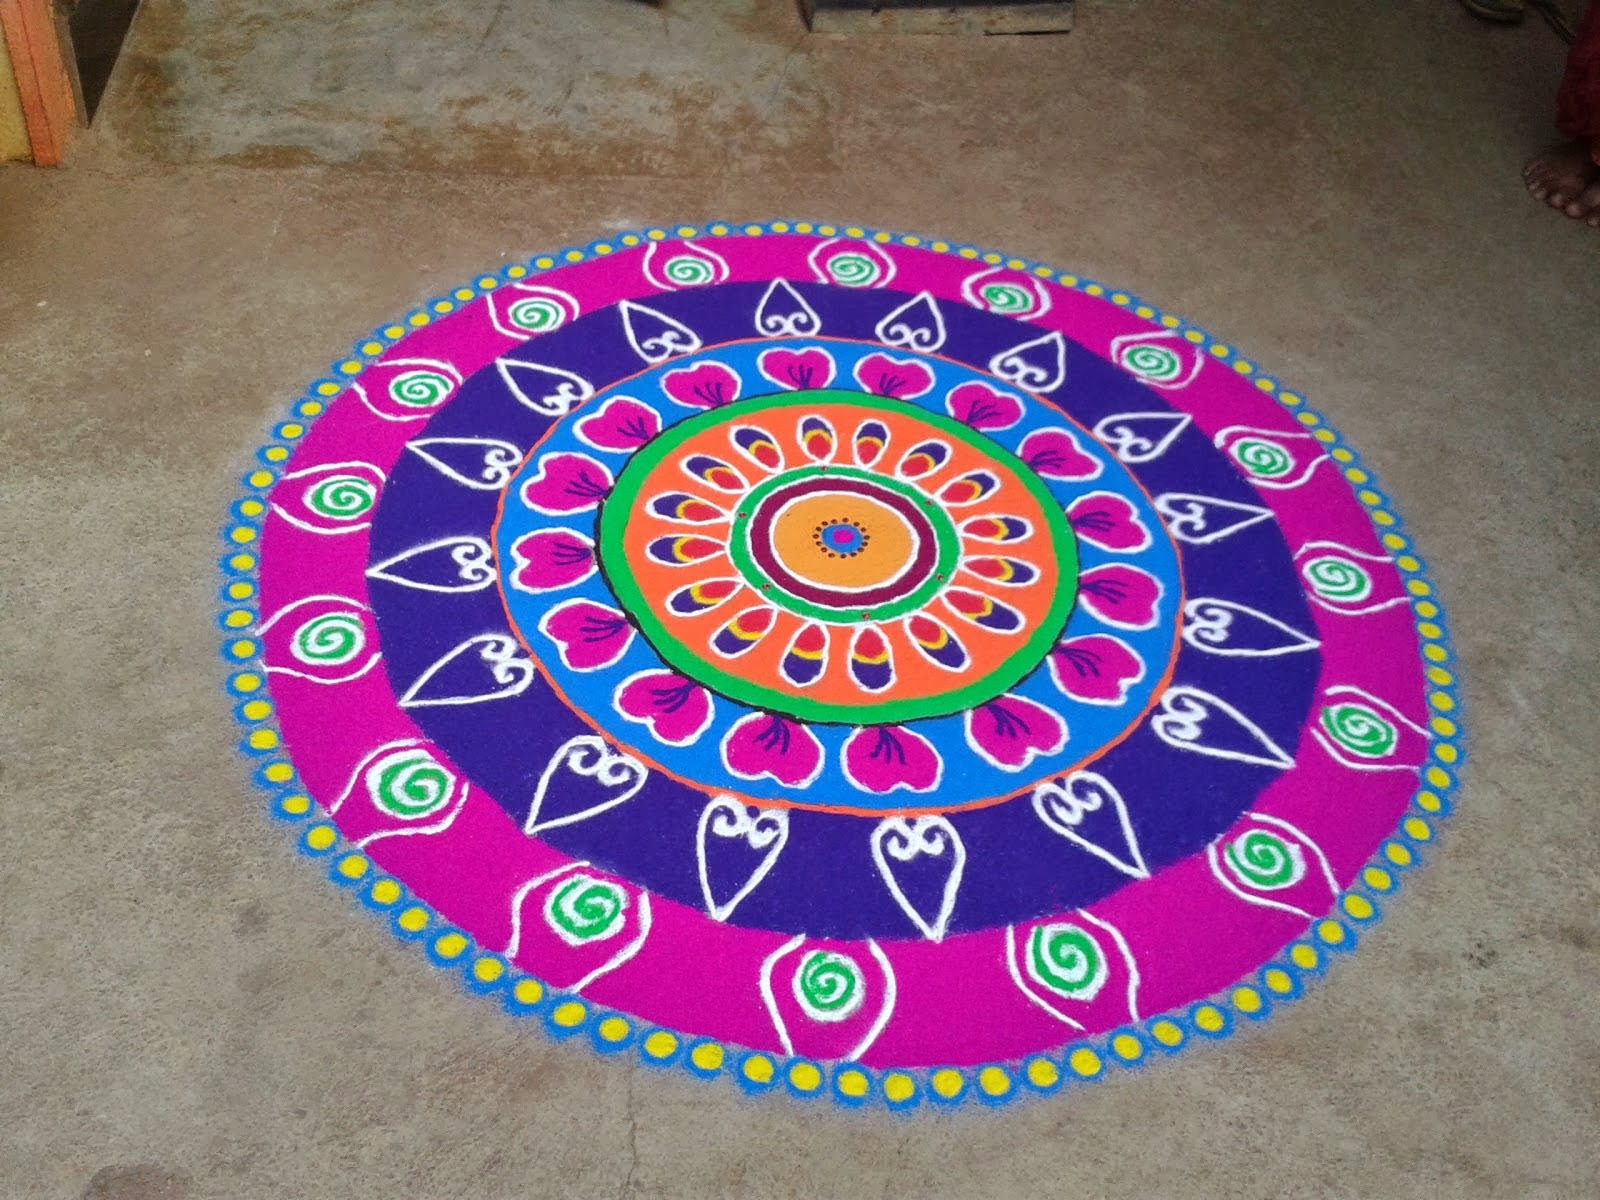 Rangoli Designs in Circle